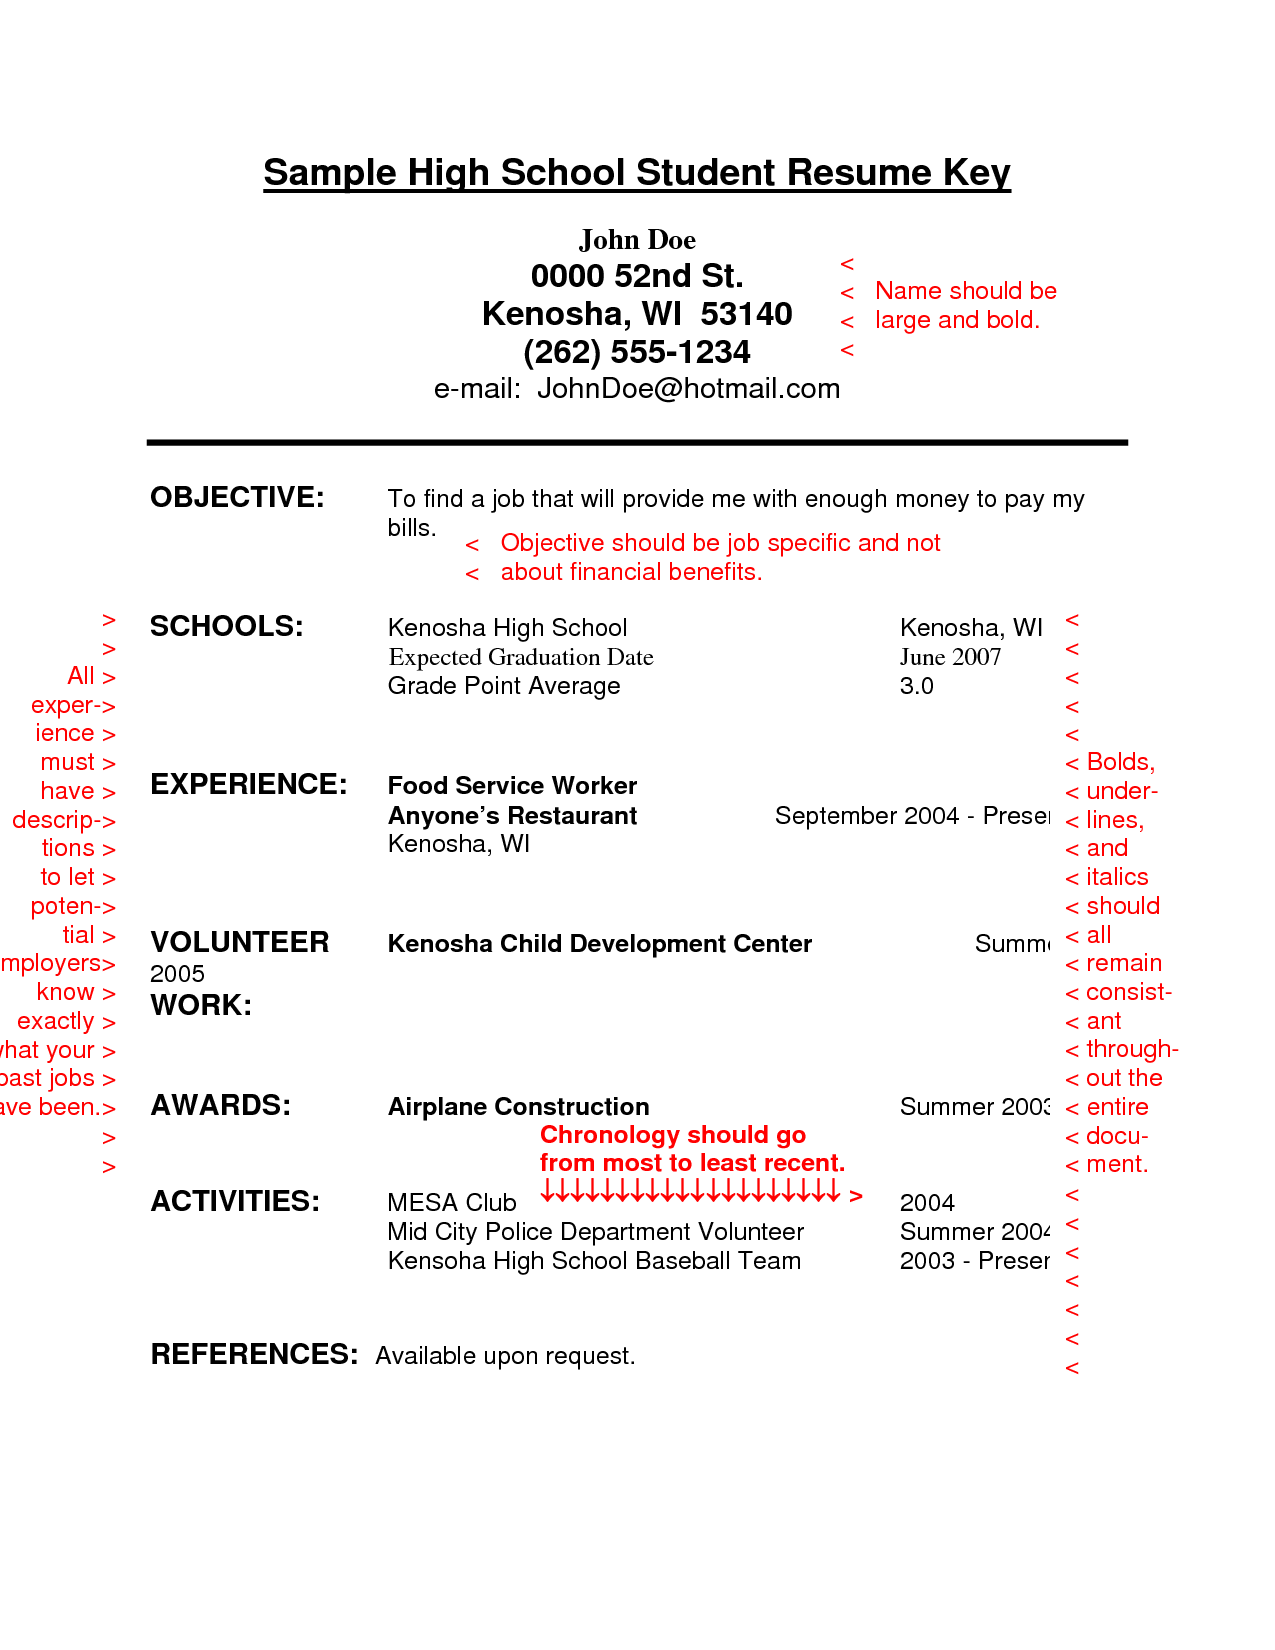 resume Resume For High School Student resume sample for high school students with no experience http httpwww